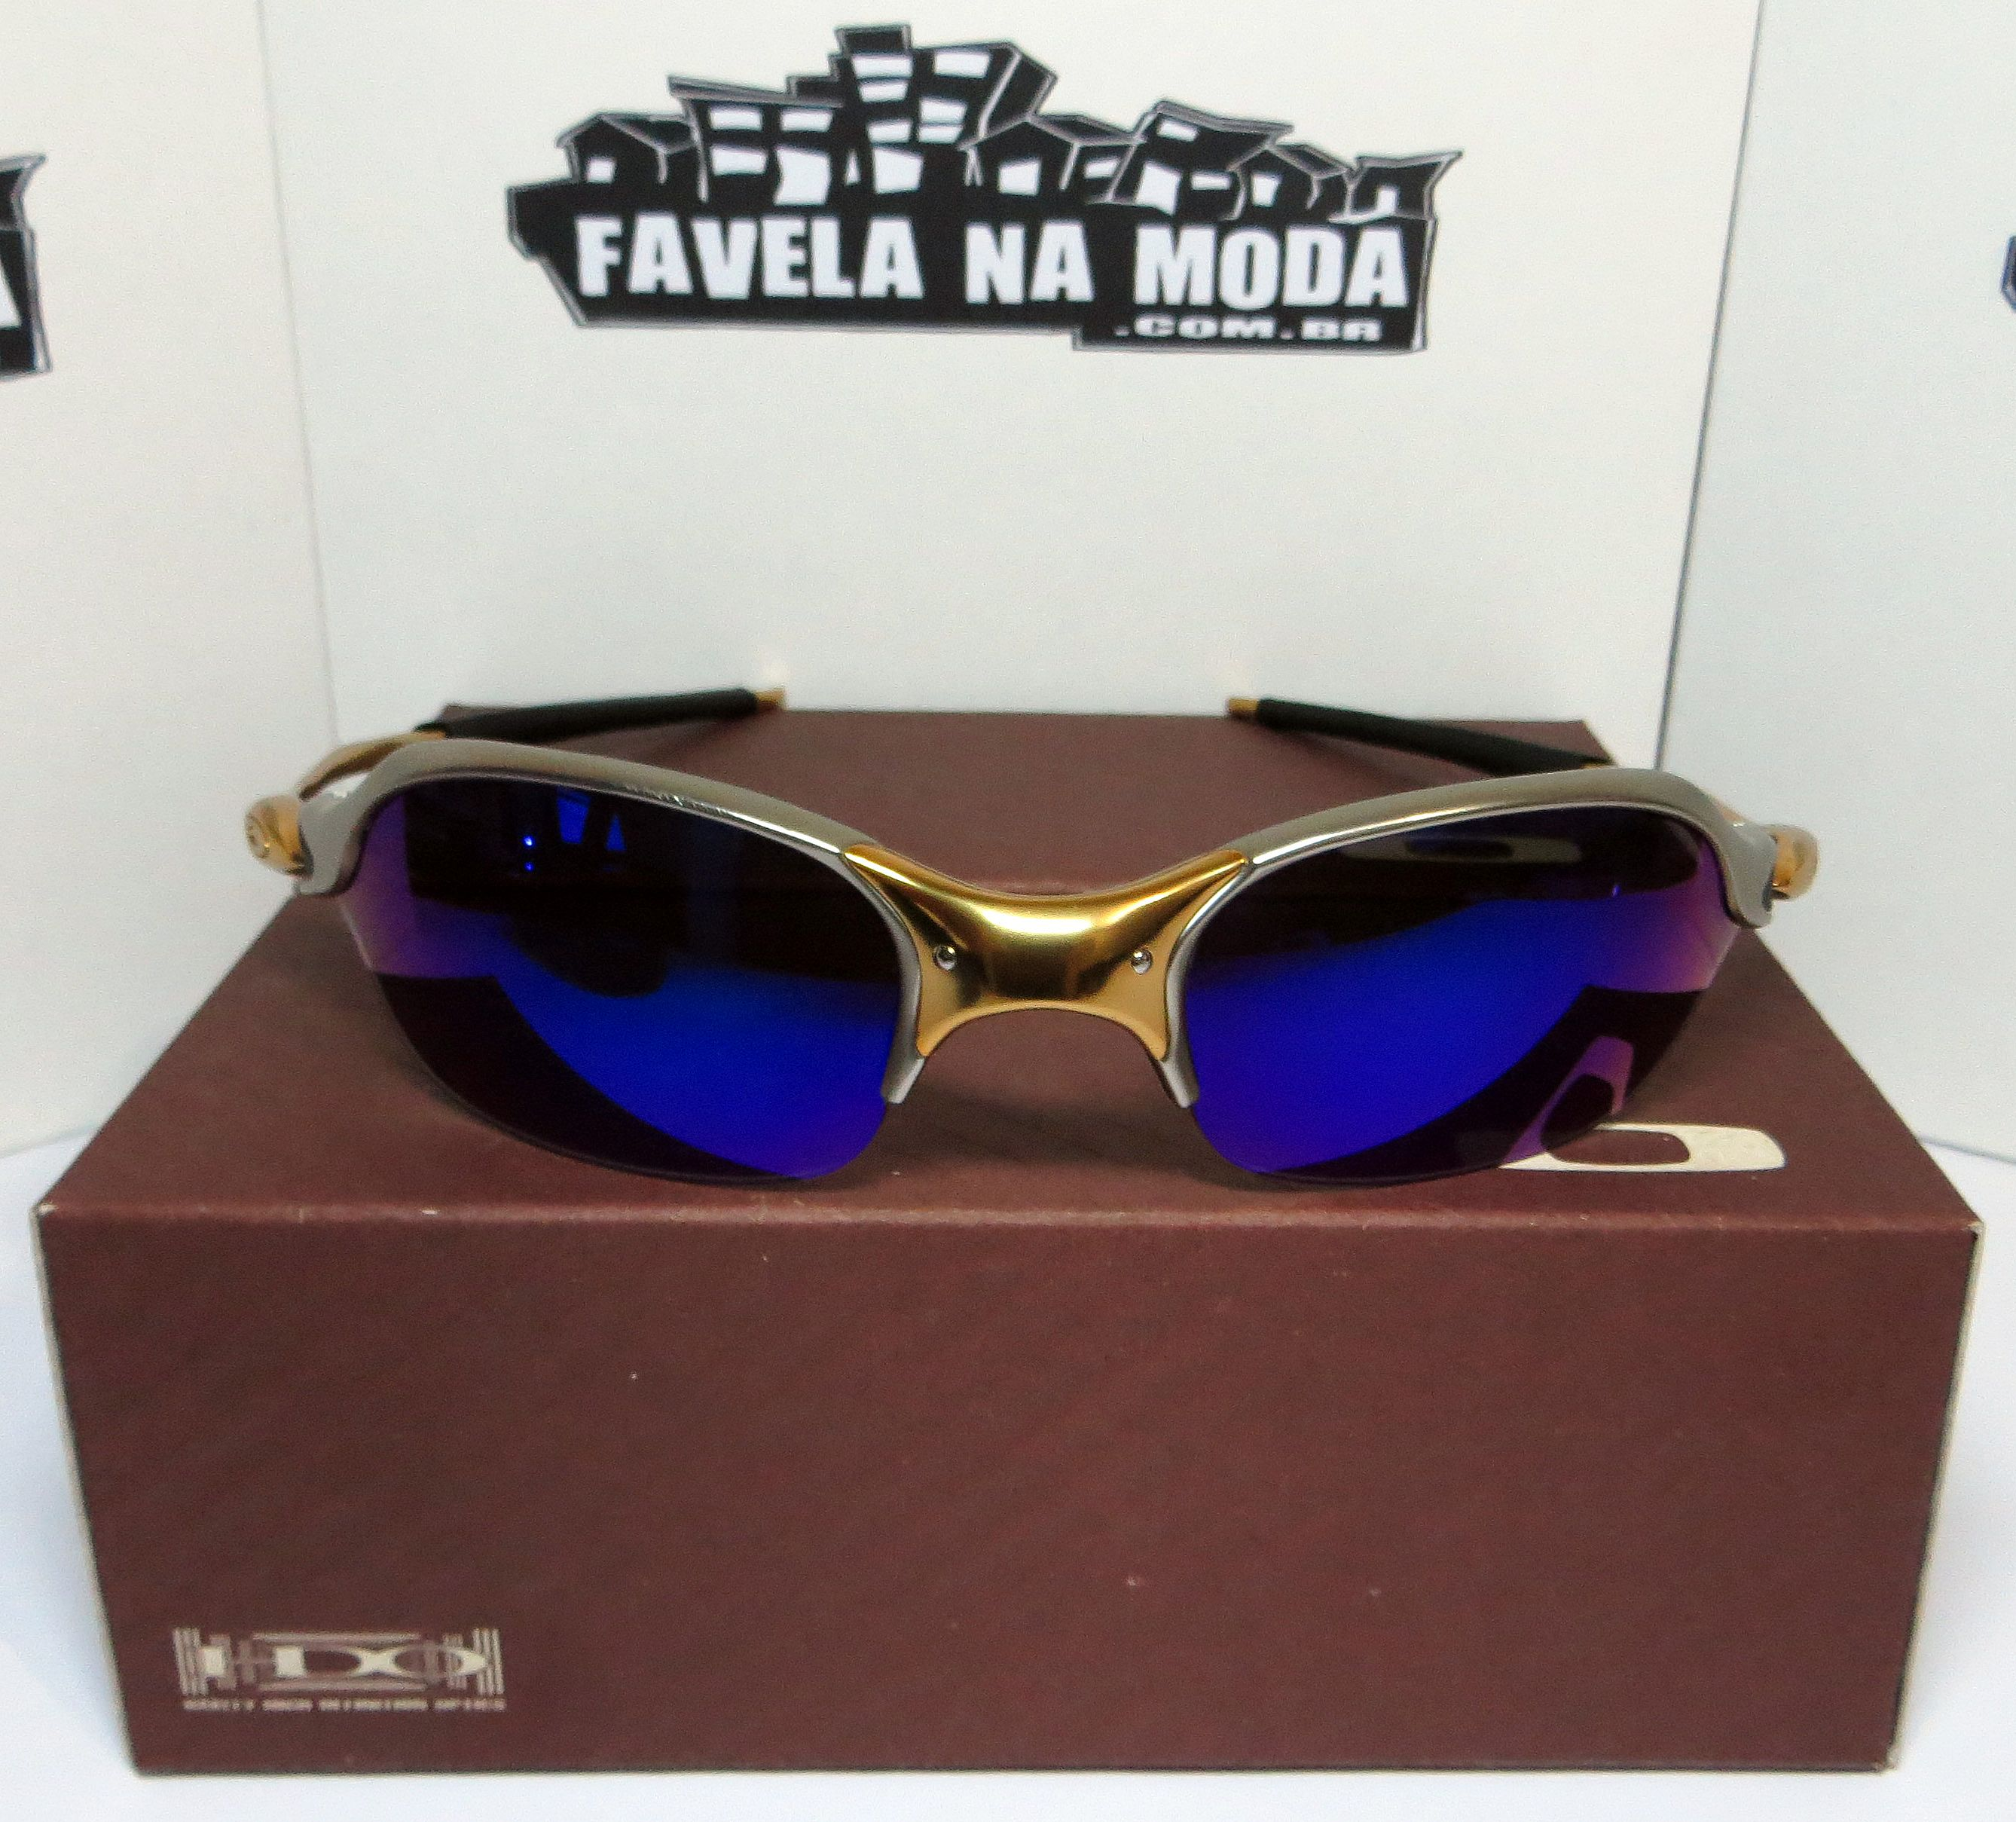 ad34d22fdfd92 Óculos Oakley Romeo 2 - 24k   Magic Blue   Borrachas Pretas